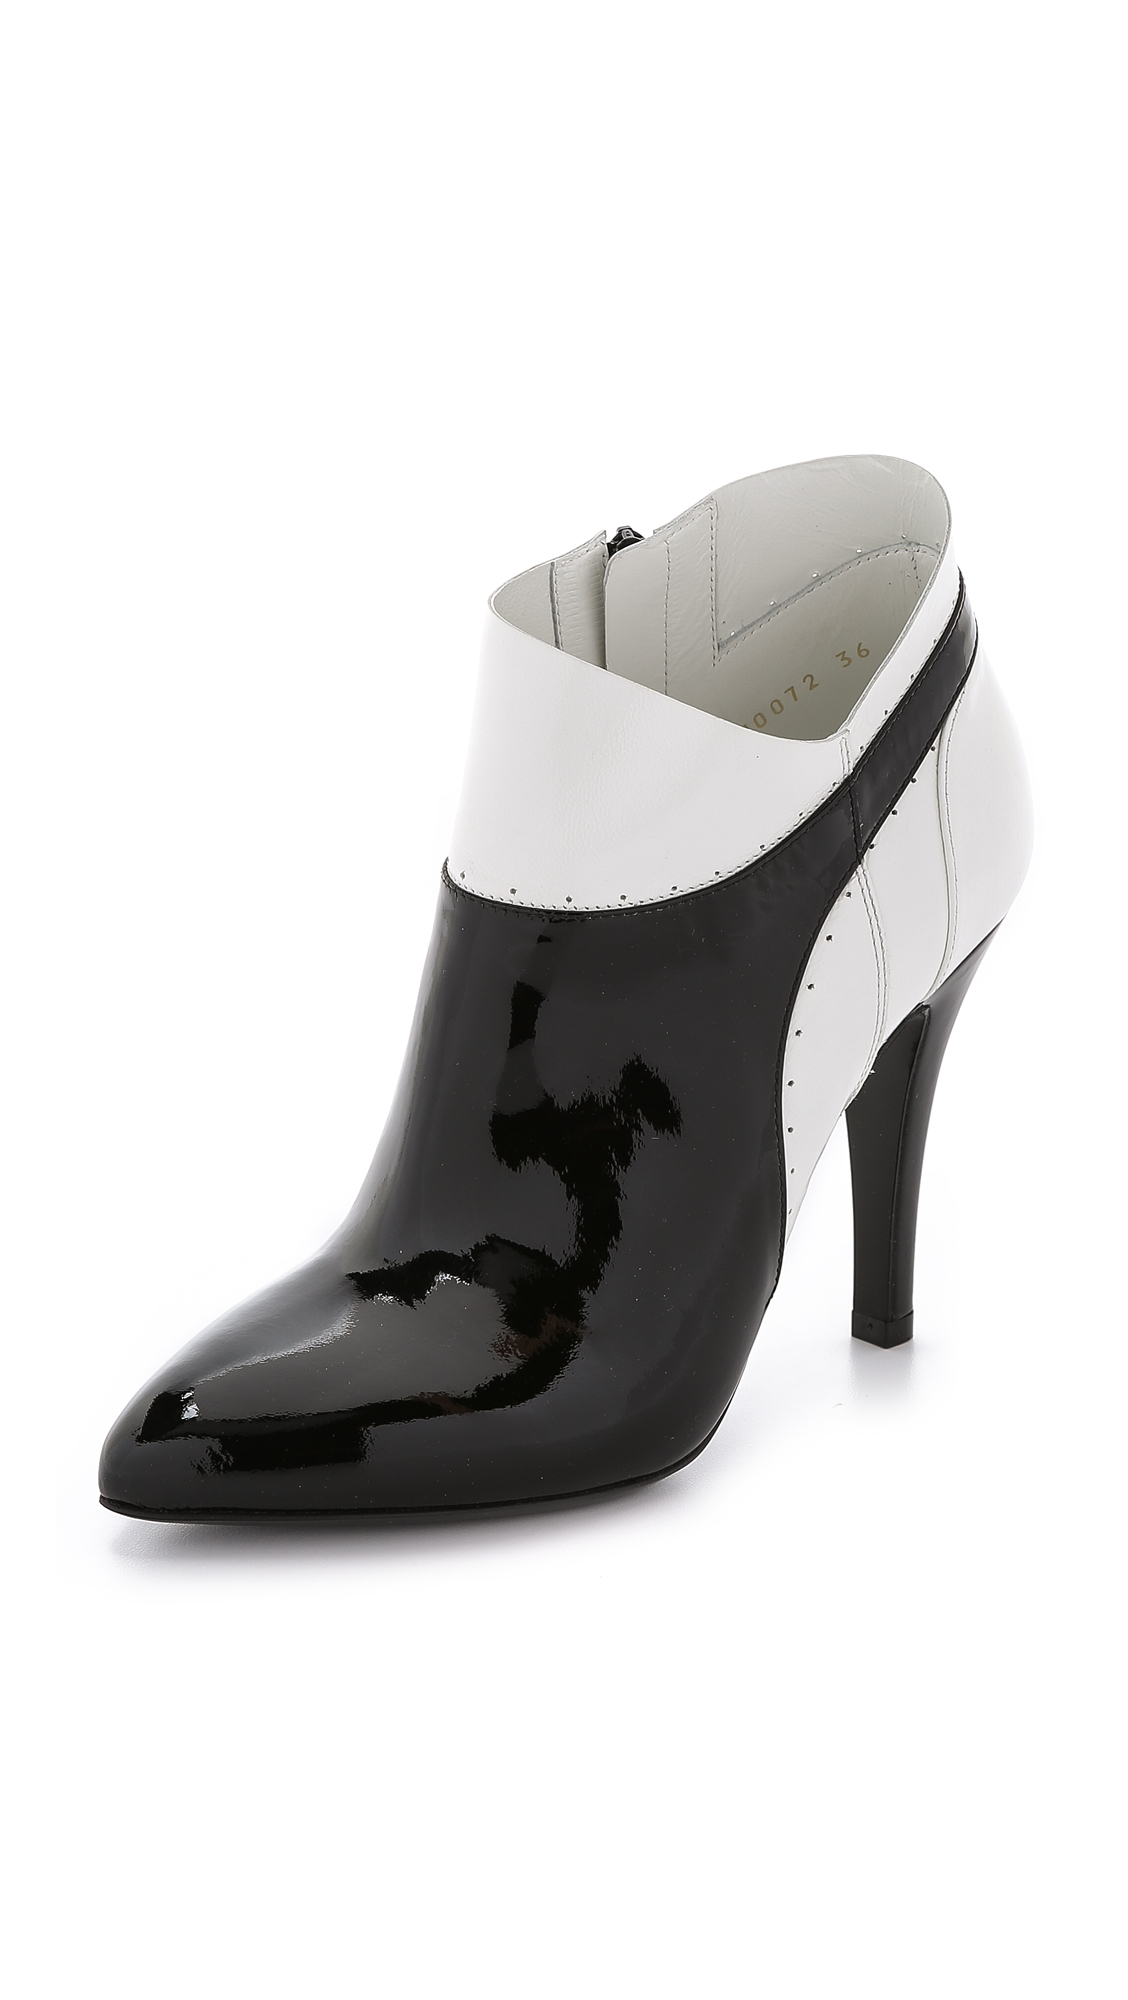 Maison Margiela 100Mm Patent Leather Ankle Boots In Black/White